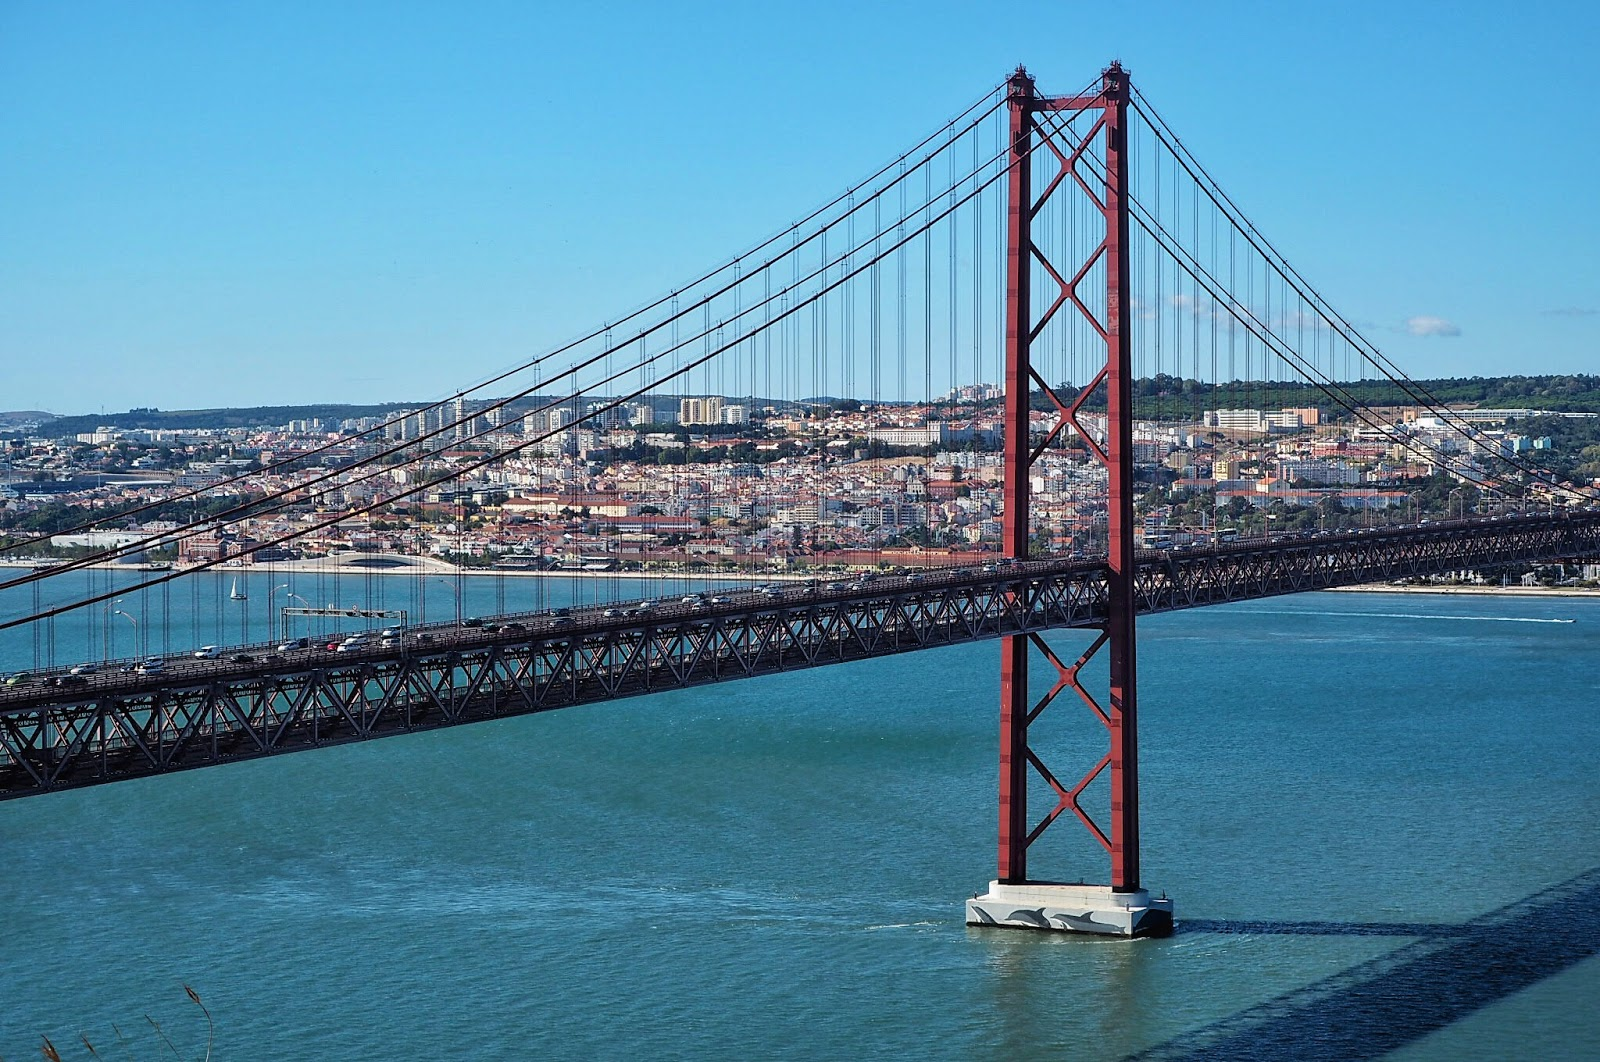 Lisbon's 25 de Abril Bridge